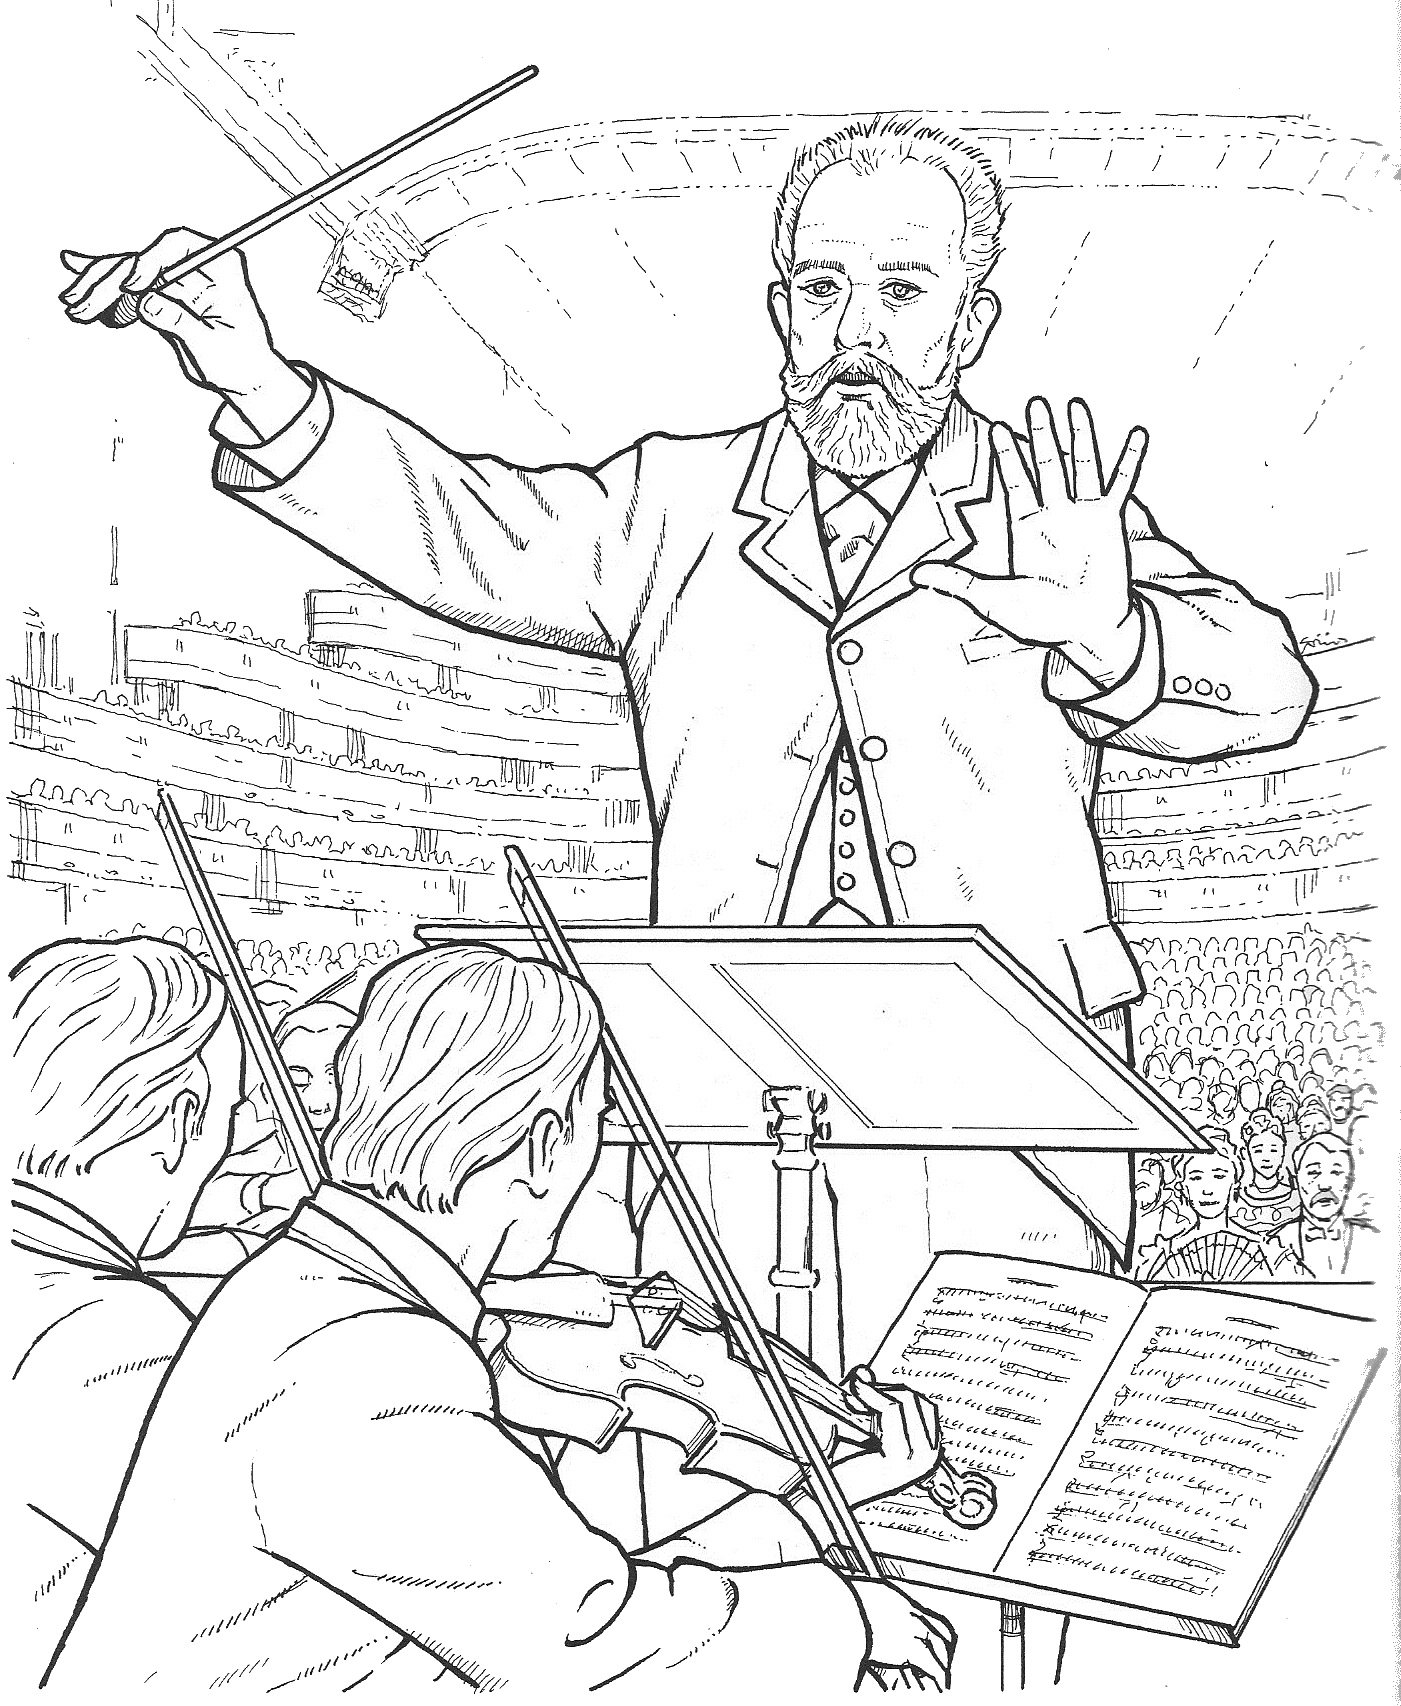 Composer Coloring Sheets 2 by The Bulletin Board Lady ... |Composers Coloring Pages